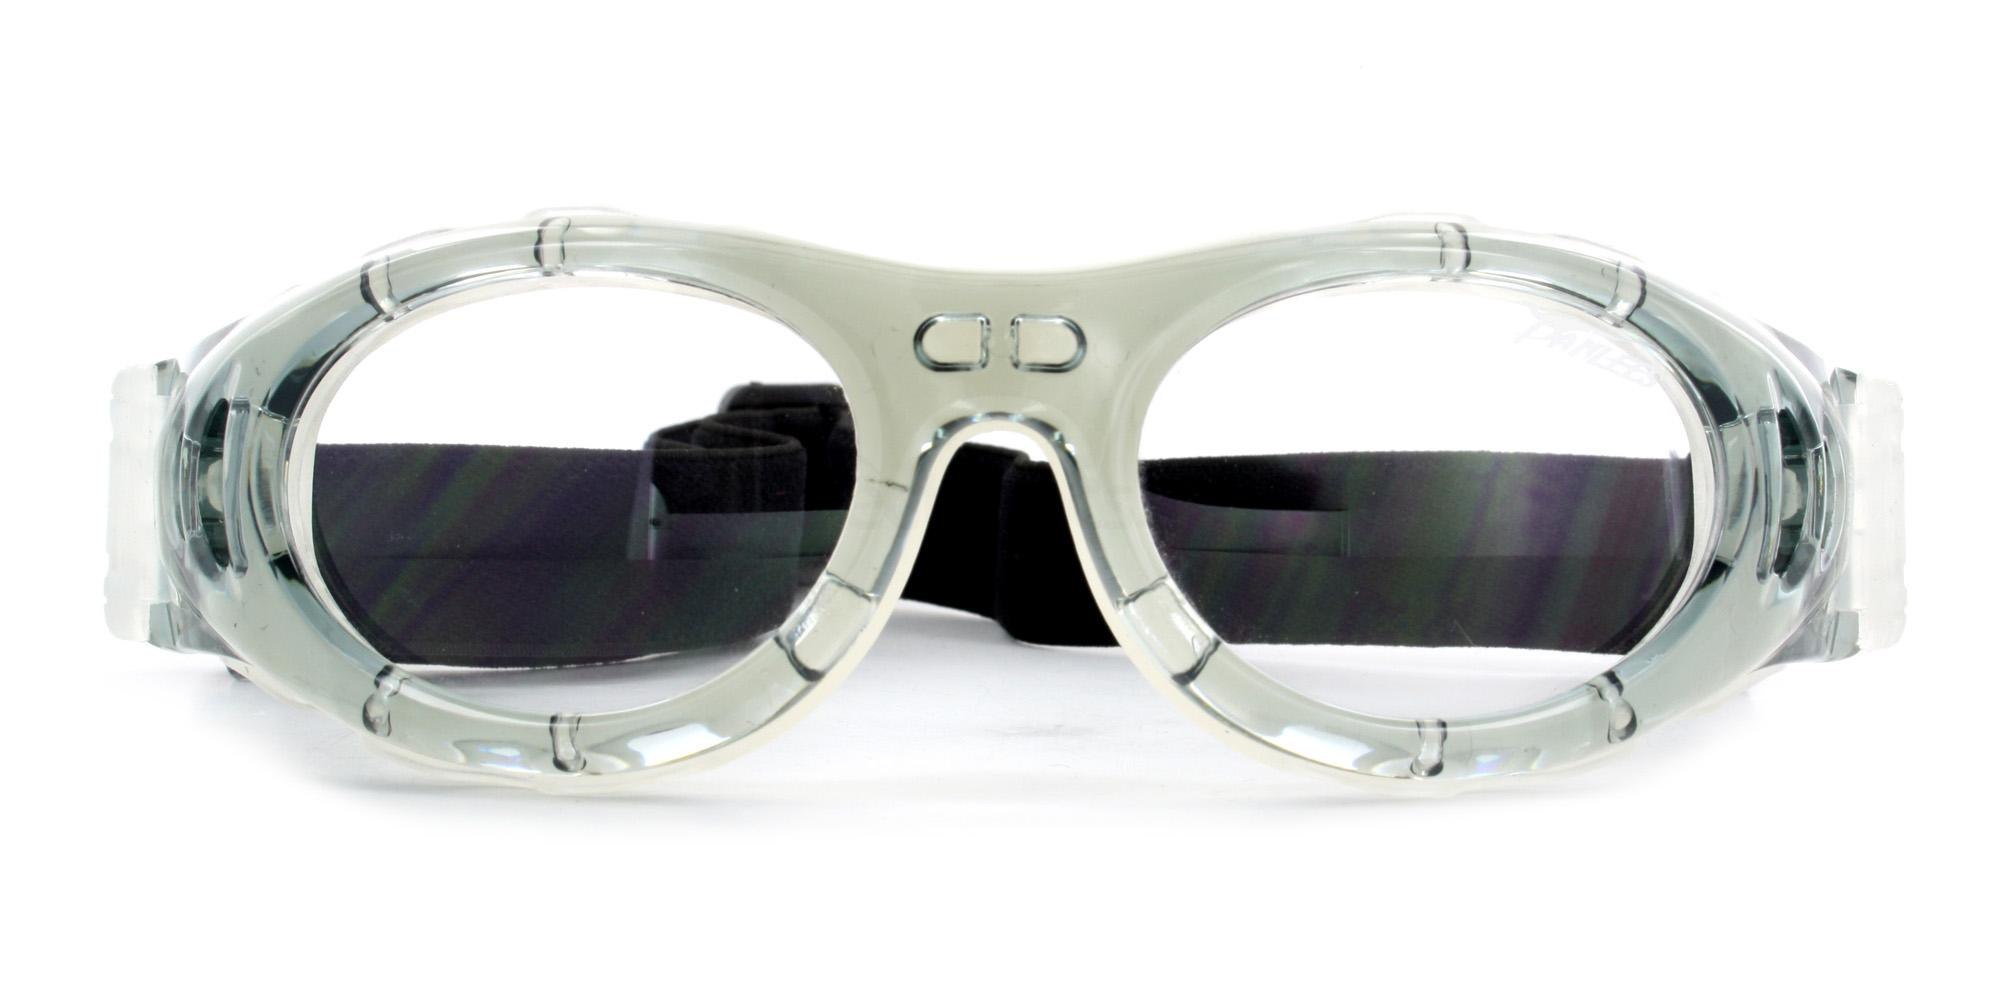 Clear Grey JH046 Sports Goggles, Aero